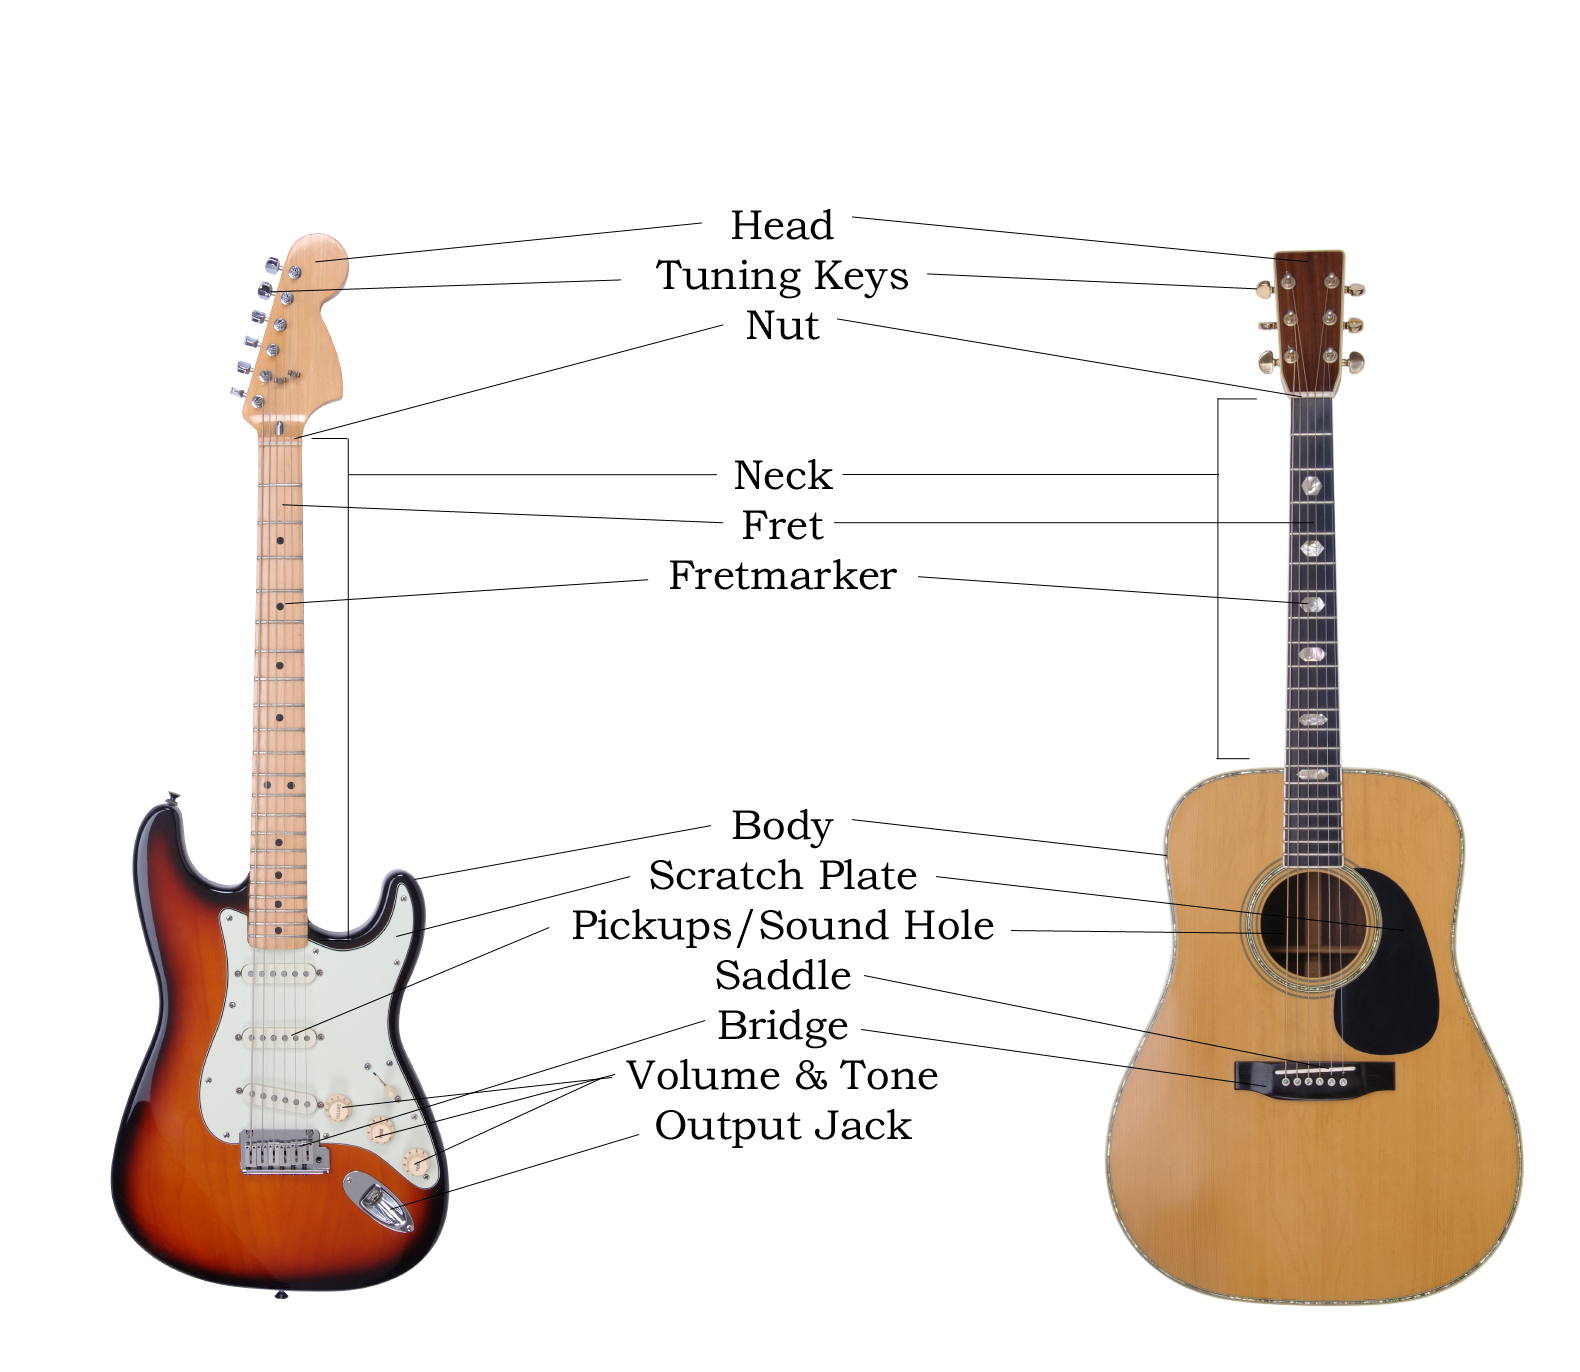 Guitar HomeStudy: Anatomy of the Guitar